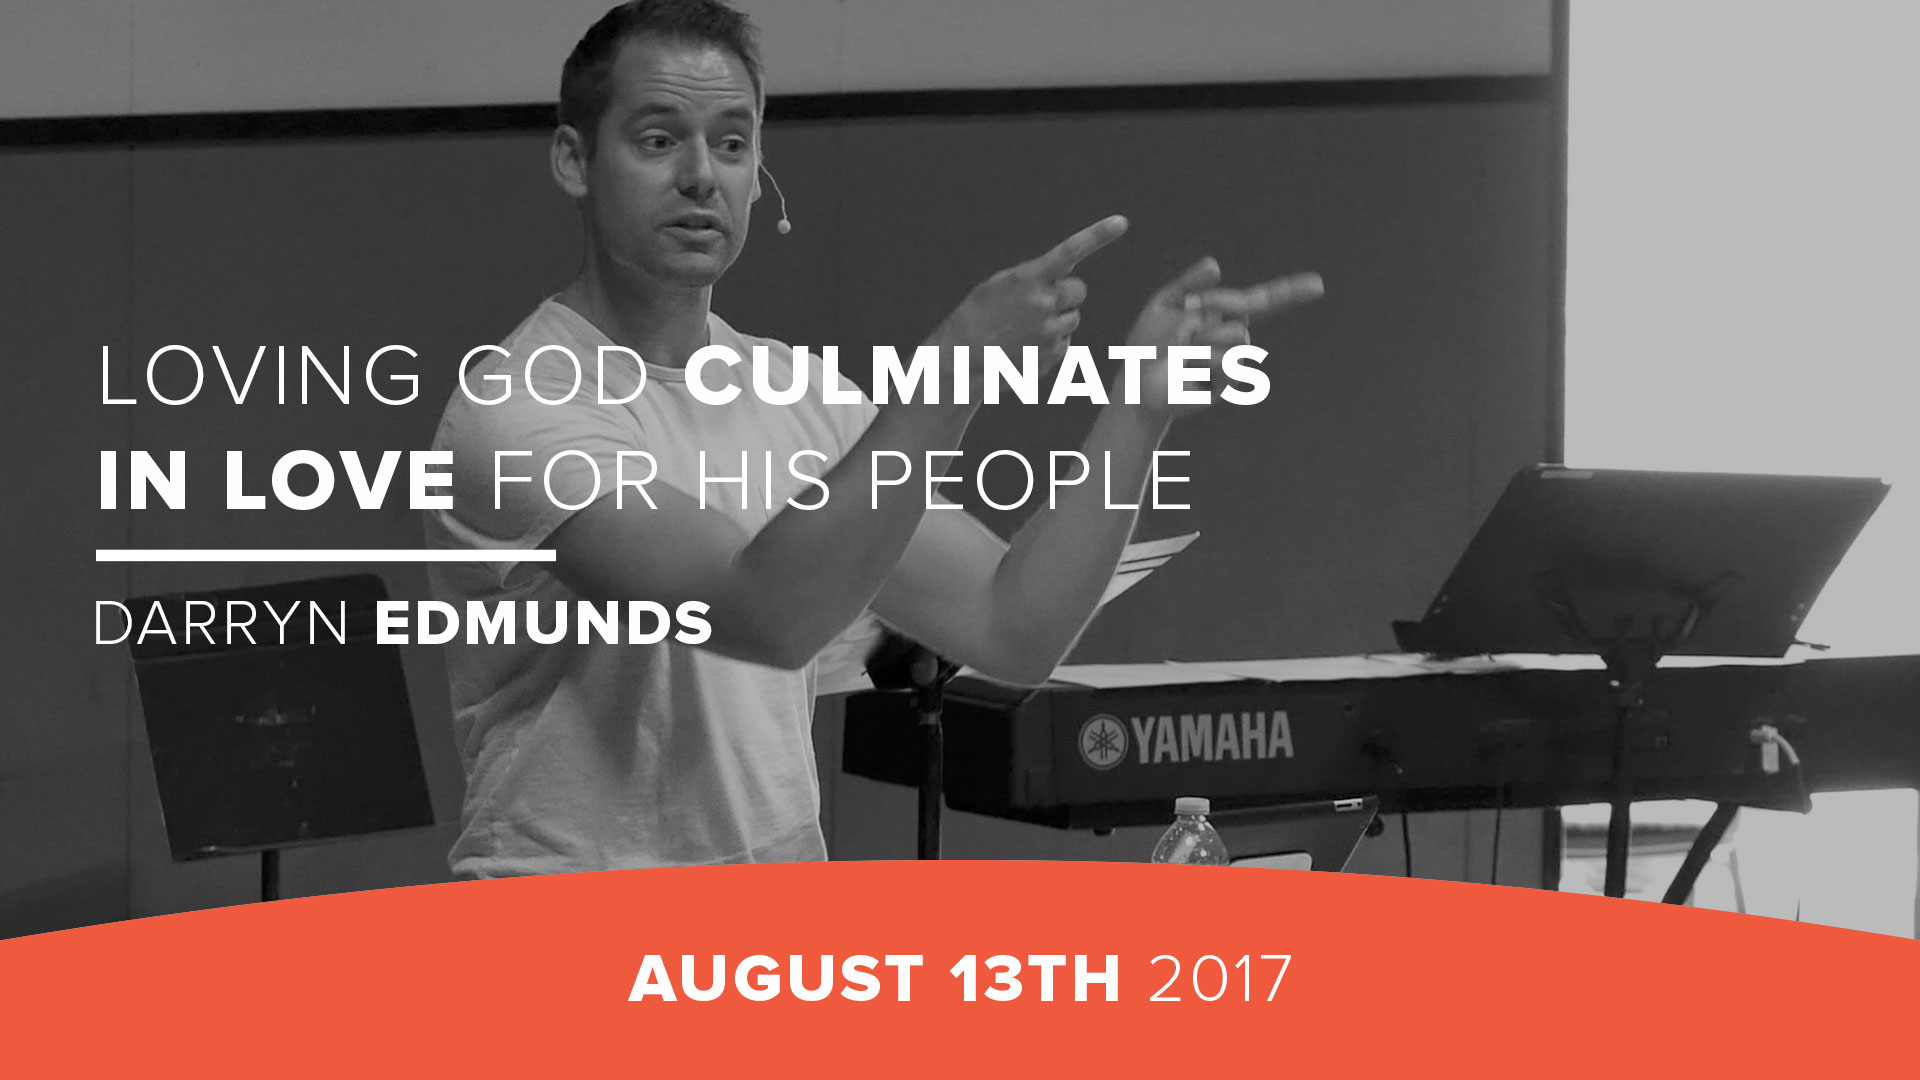 Loving God culminates in love for His people